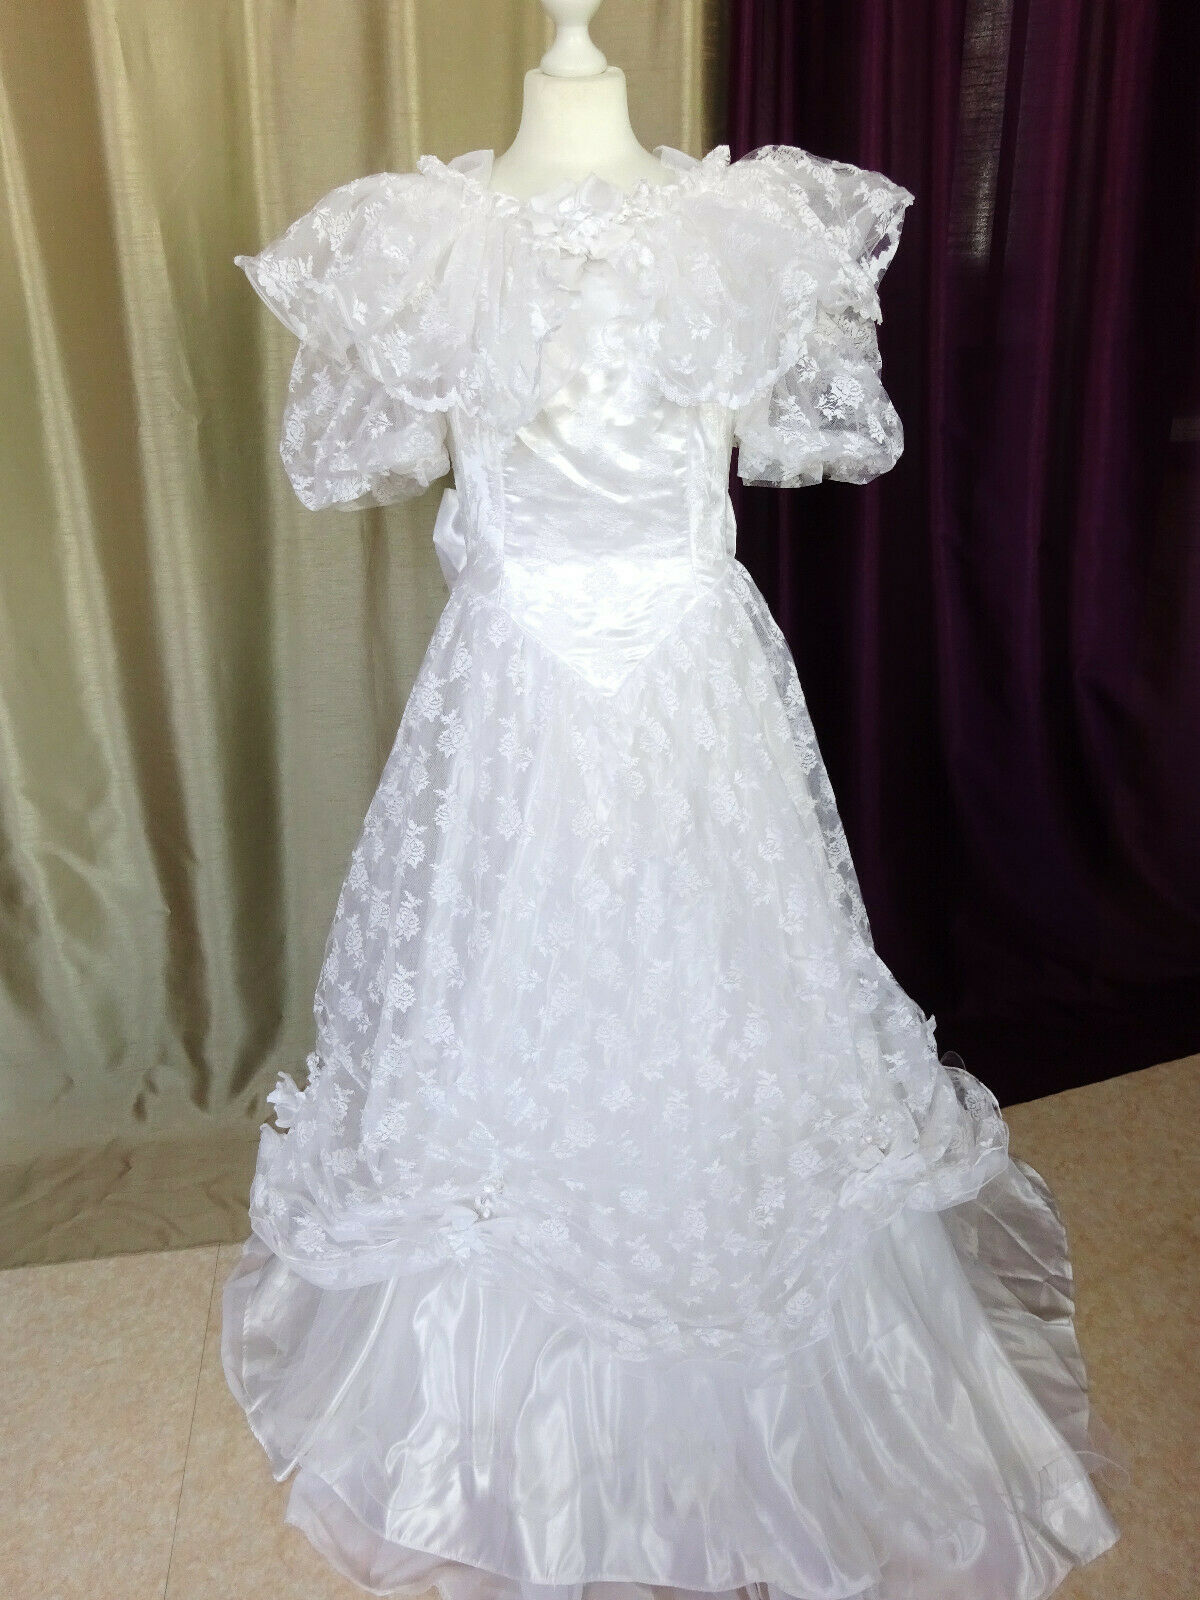 details about wedding dress vintage 70/80's tulle lace white size fr38 u6  uk10